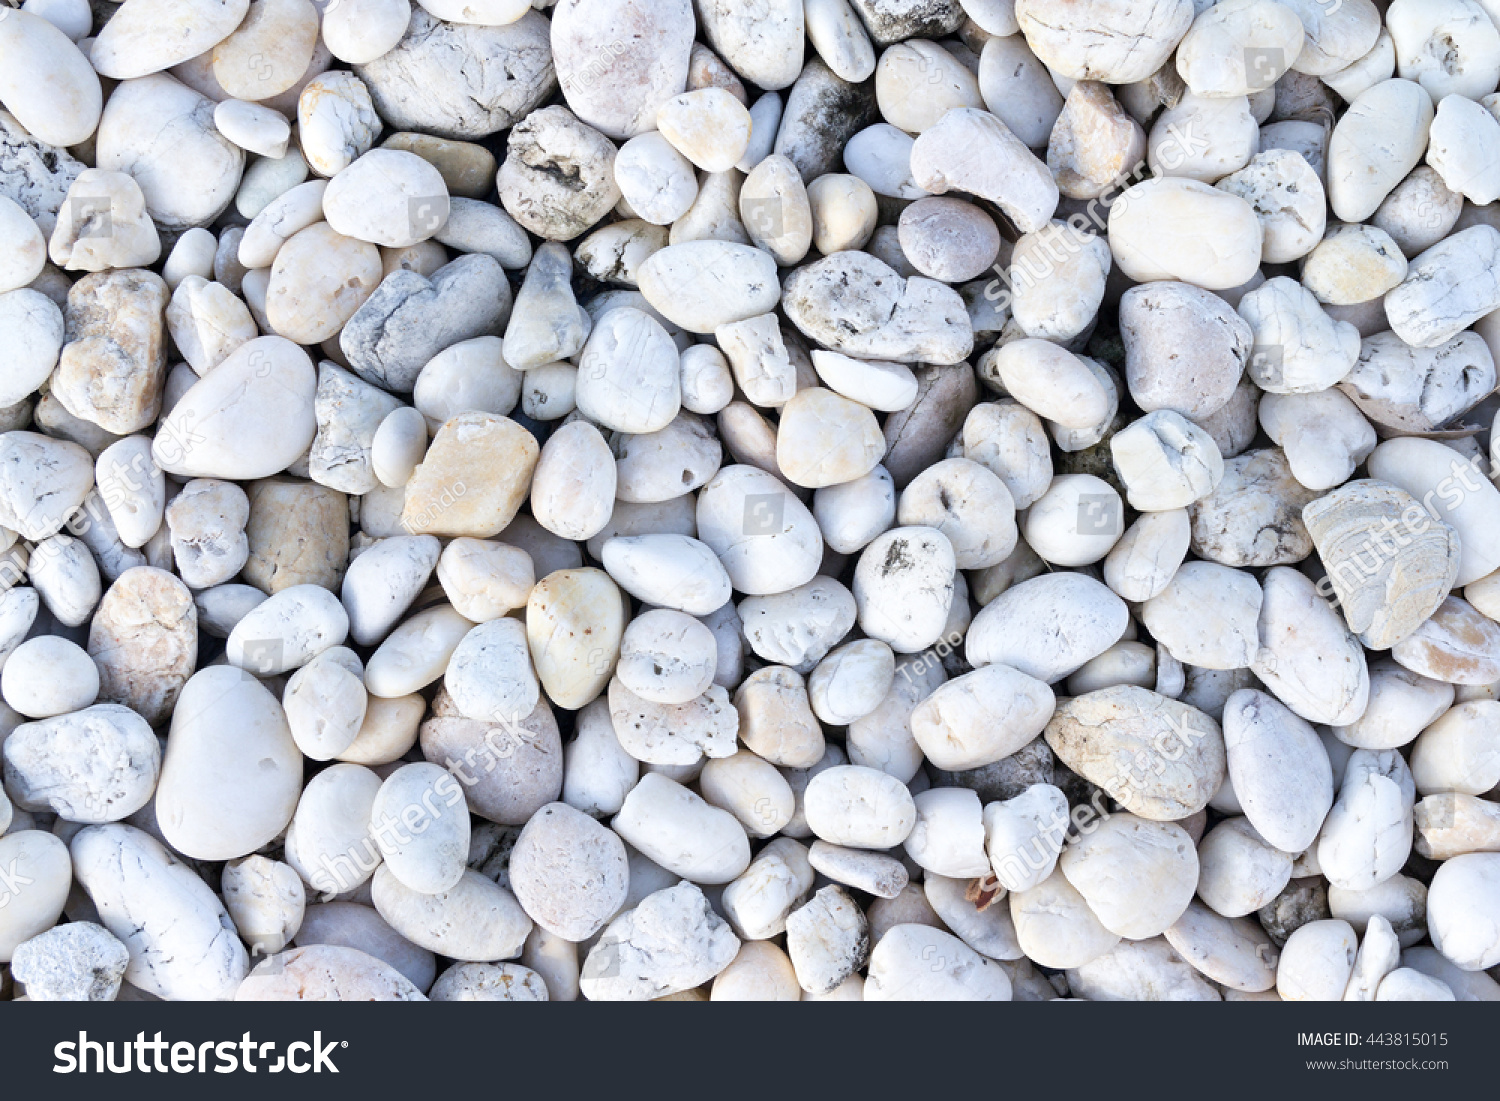 Smooth shaped white stones surface texture background stock photo - White River Stone Texture